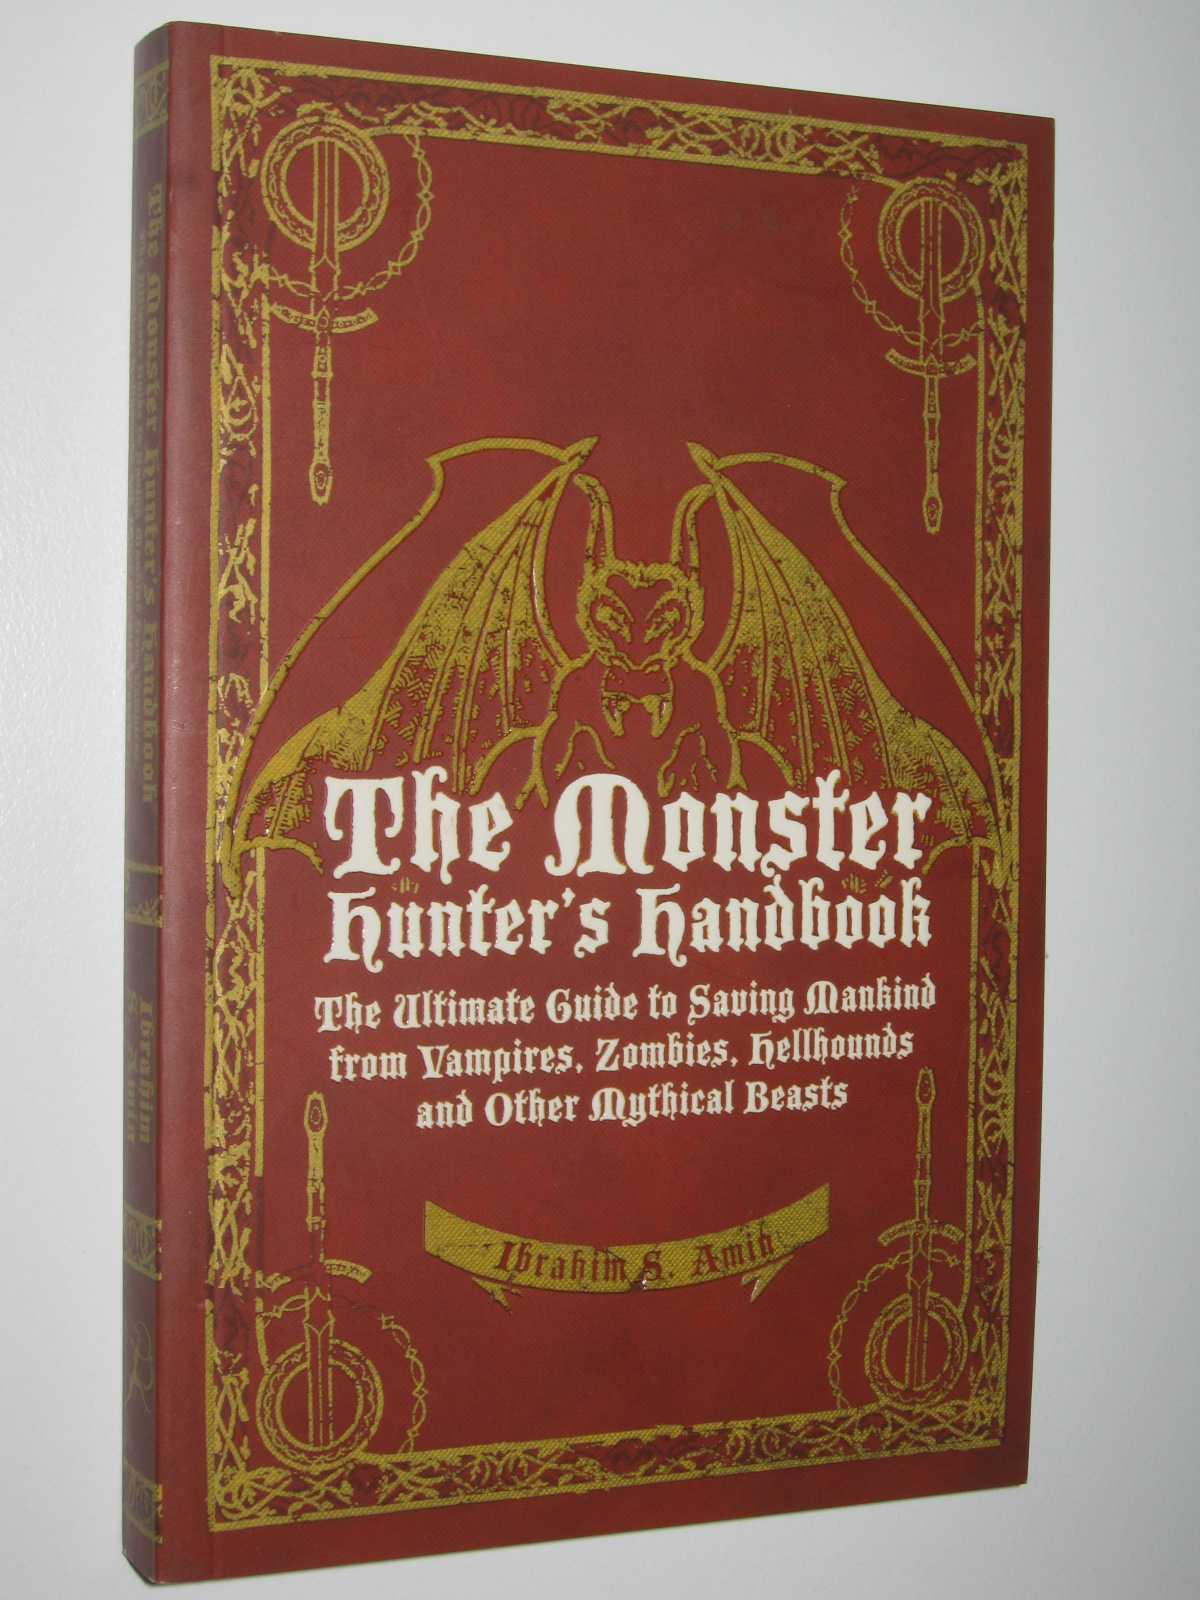 The Monster Hunter's Handbook : The Ultimate Guide to Saving Mankind from Vampires, Zombies, Hellhounds and Other Mythical Beasts, Amin, Iibrahim S.